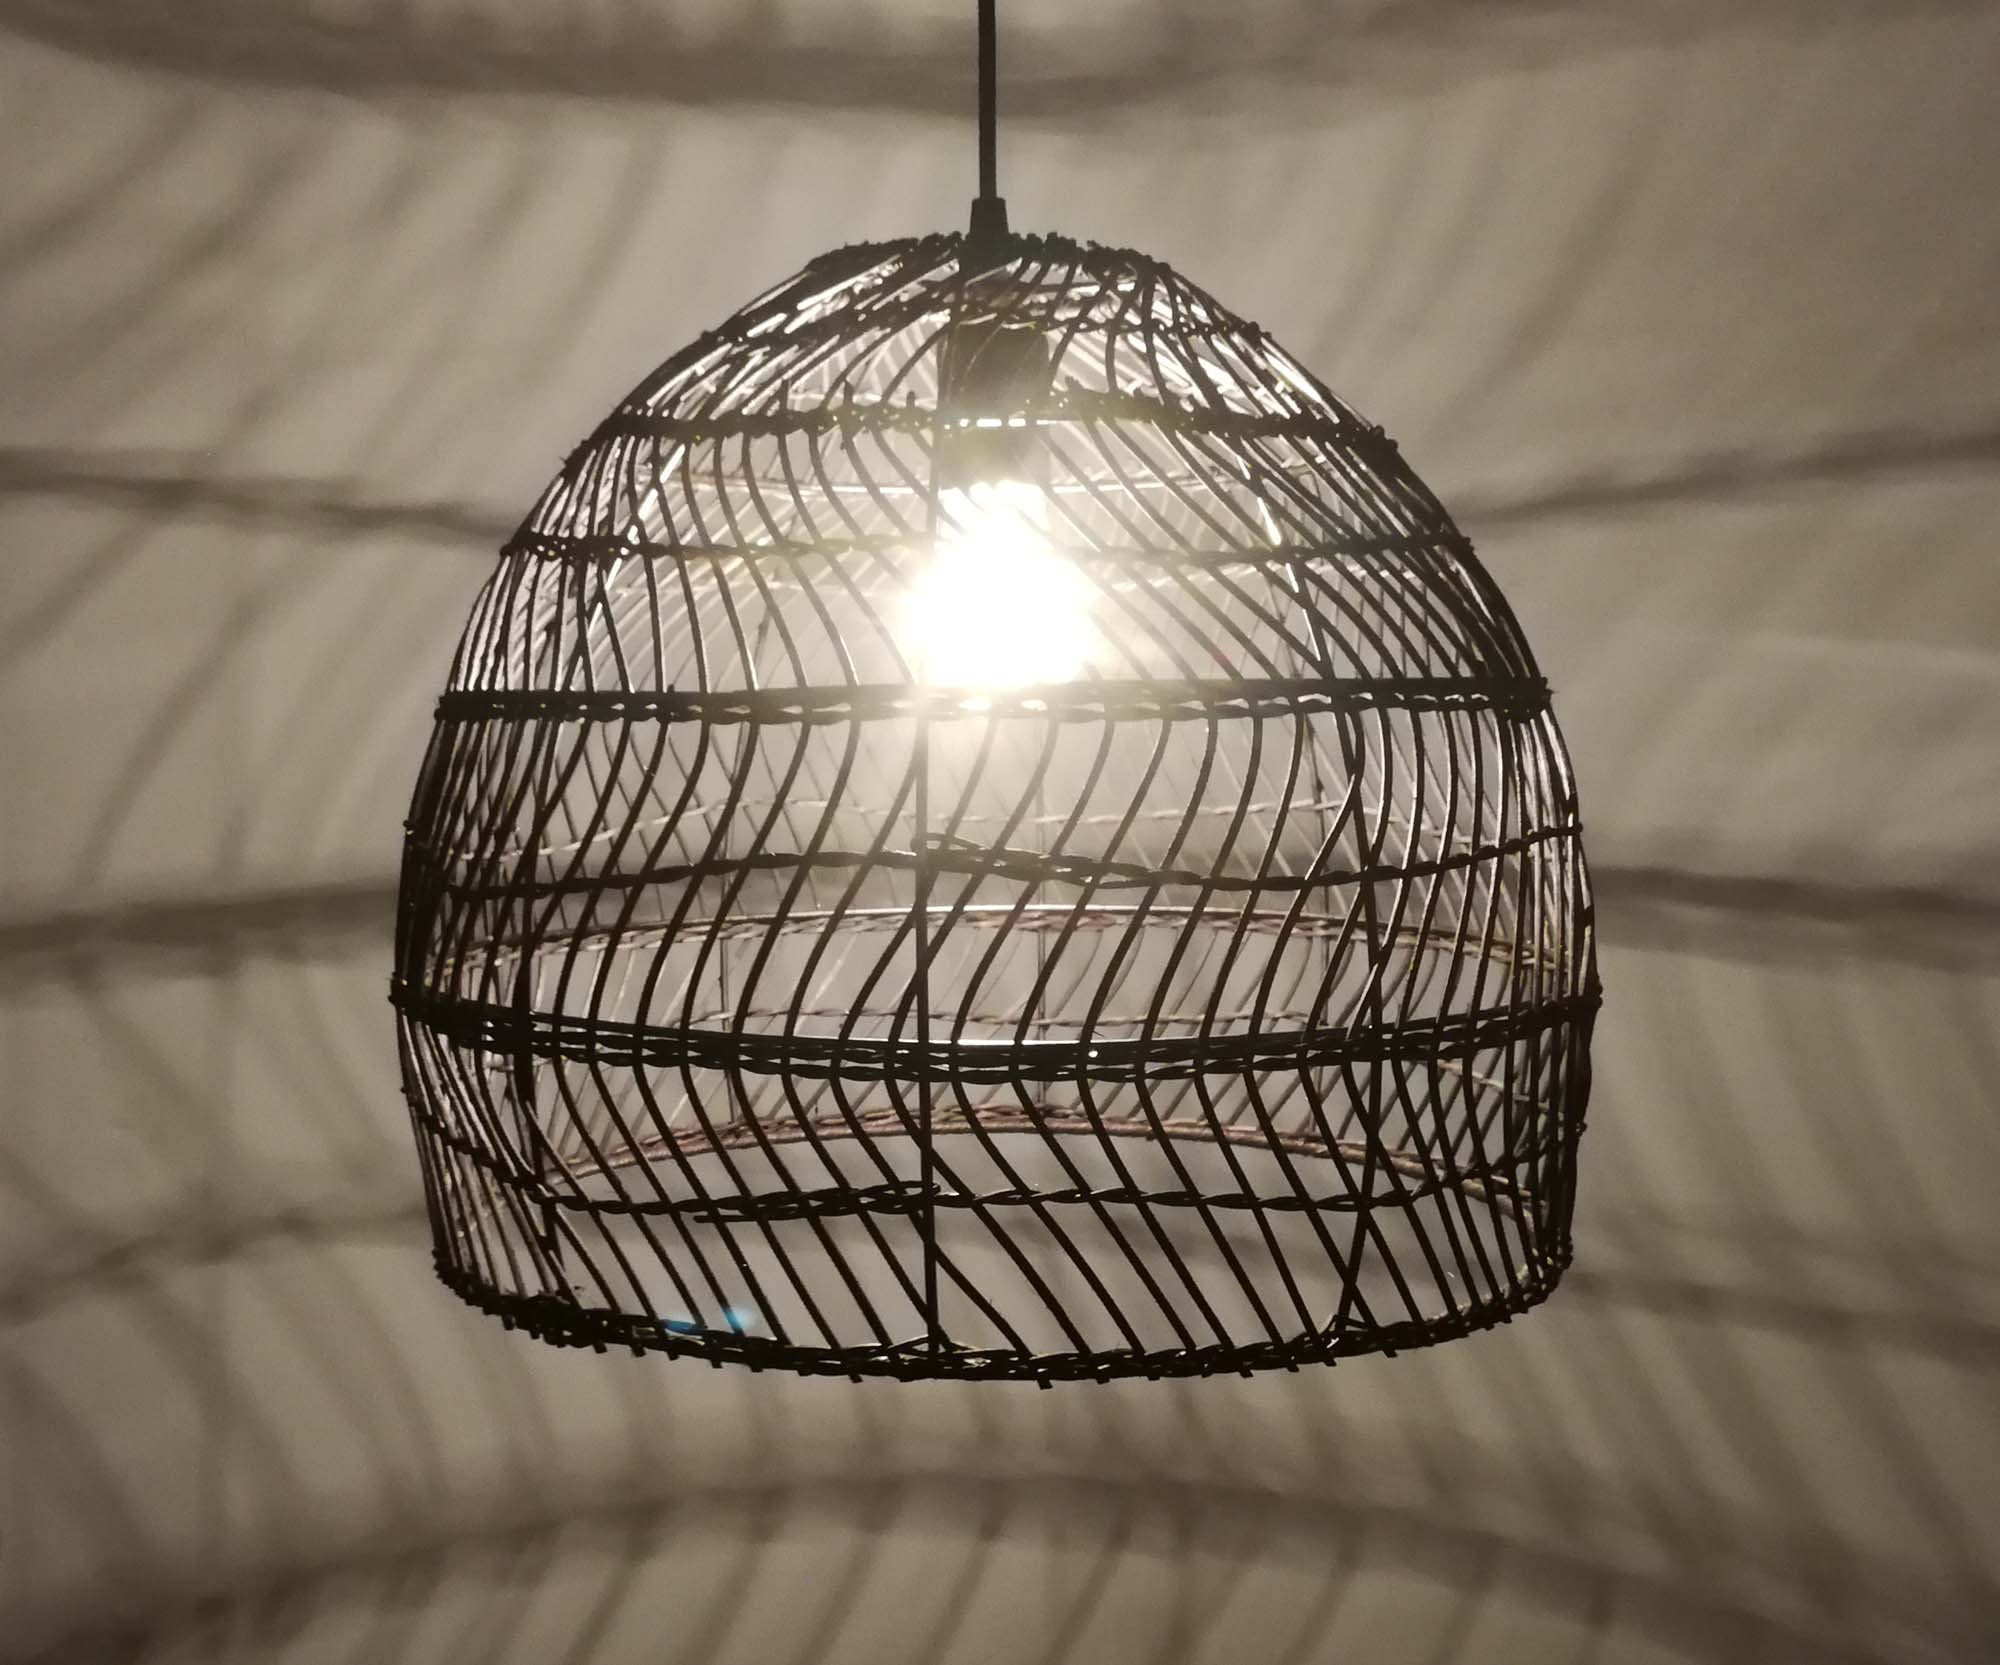 Bell-shaped Rattan Pendant Light  Natural rattan color or